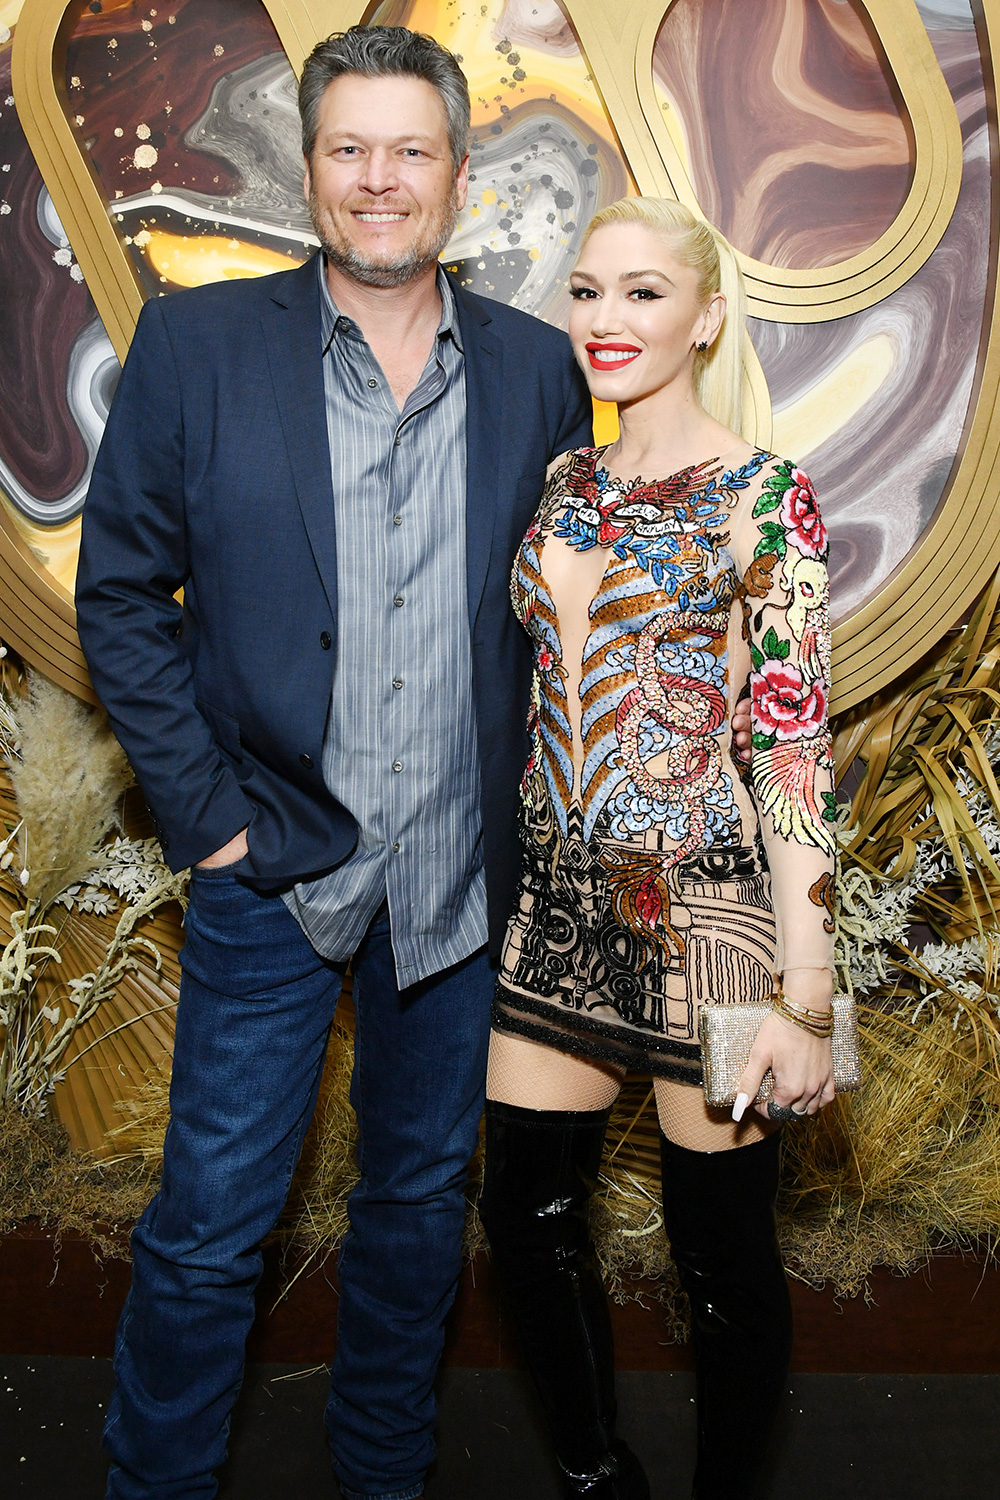 Blake Shelton and Gwen Stefani attend the Warner Music Group Pre-Grammy Party at Hollywood Athletic Club on January 23, 2020 in Hollywood, California